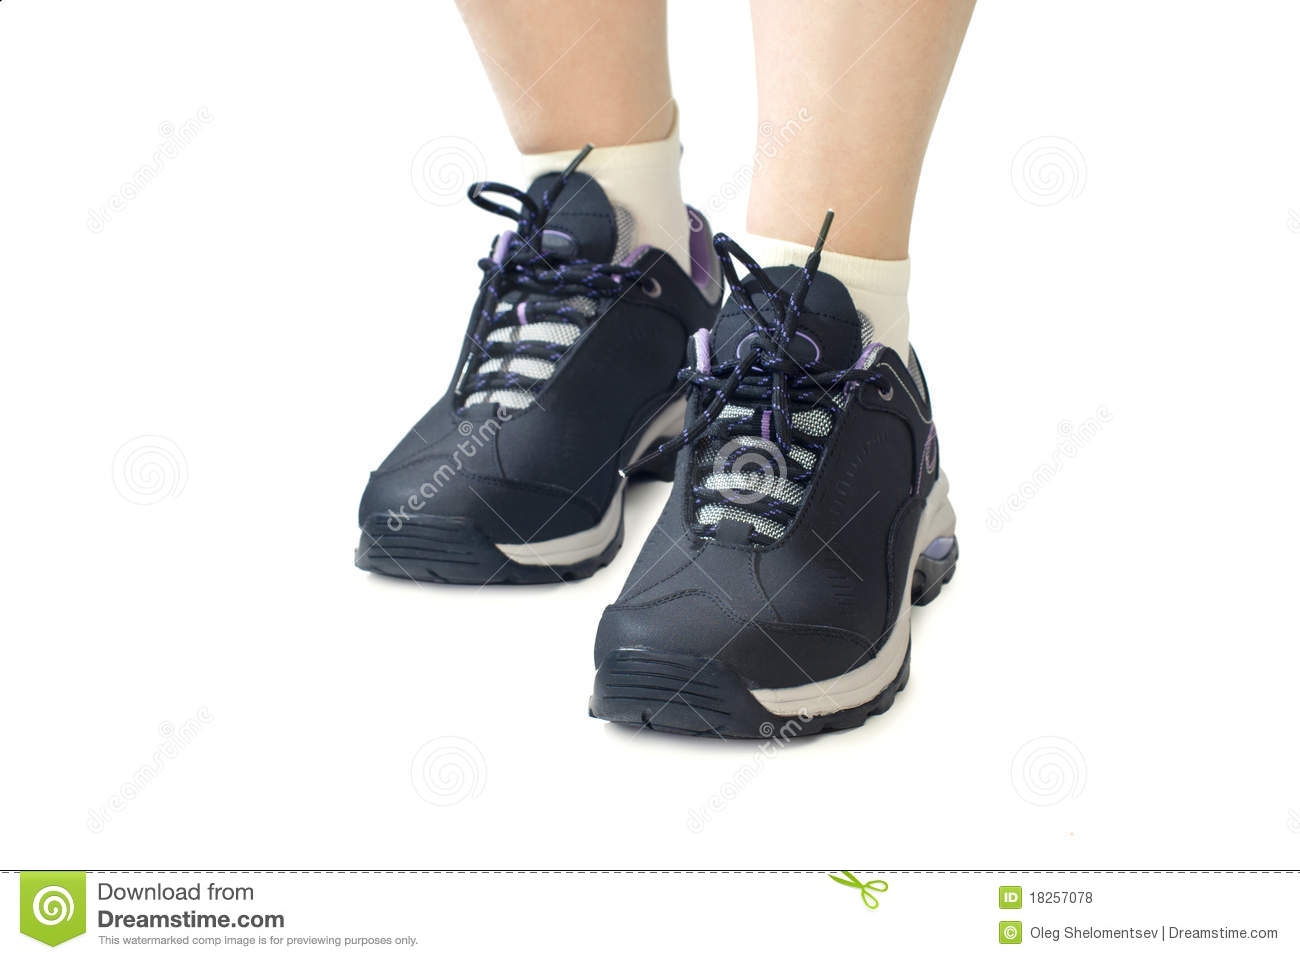 Women sports shoes / sneakers. Closeup of woman legs and feet wearing